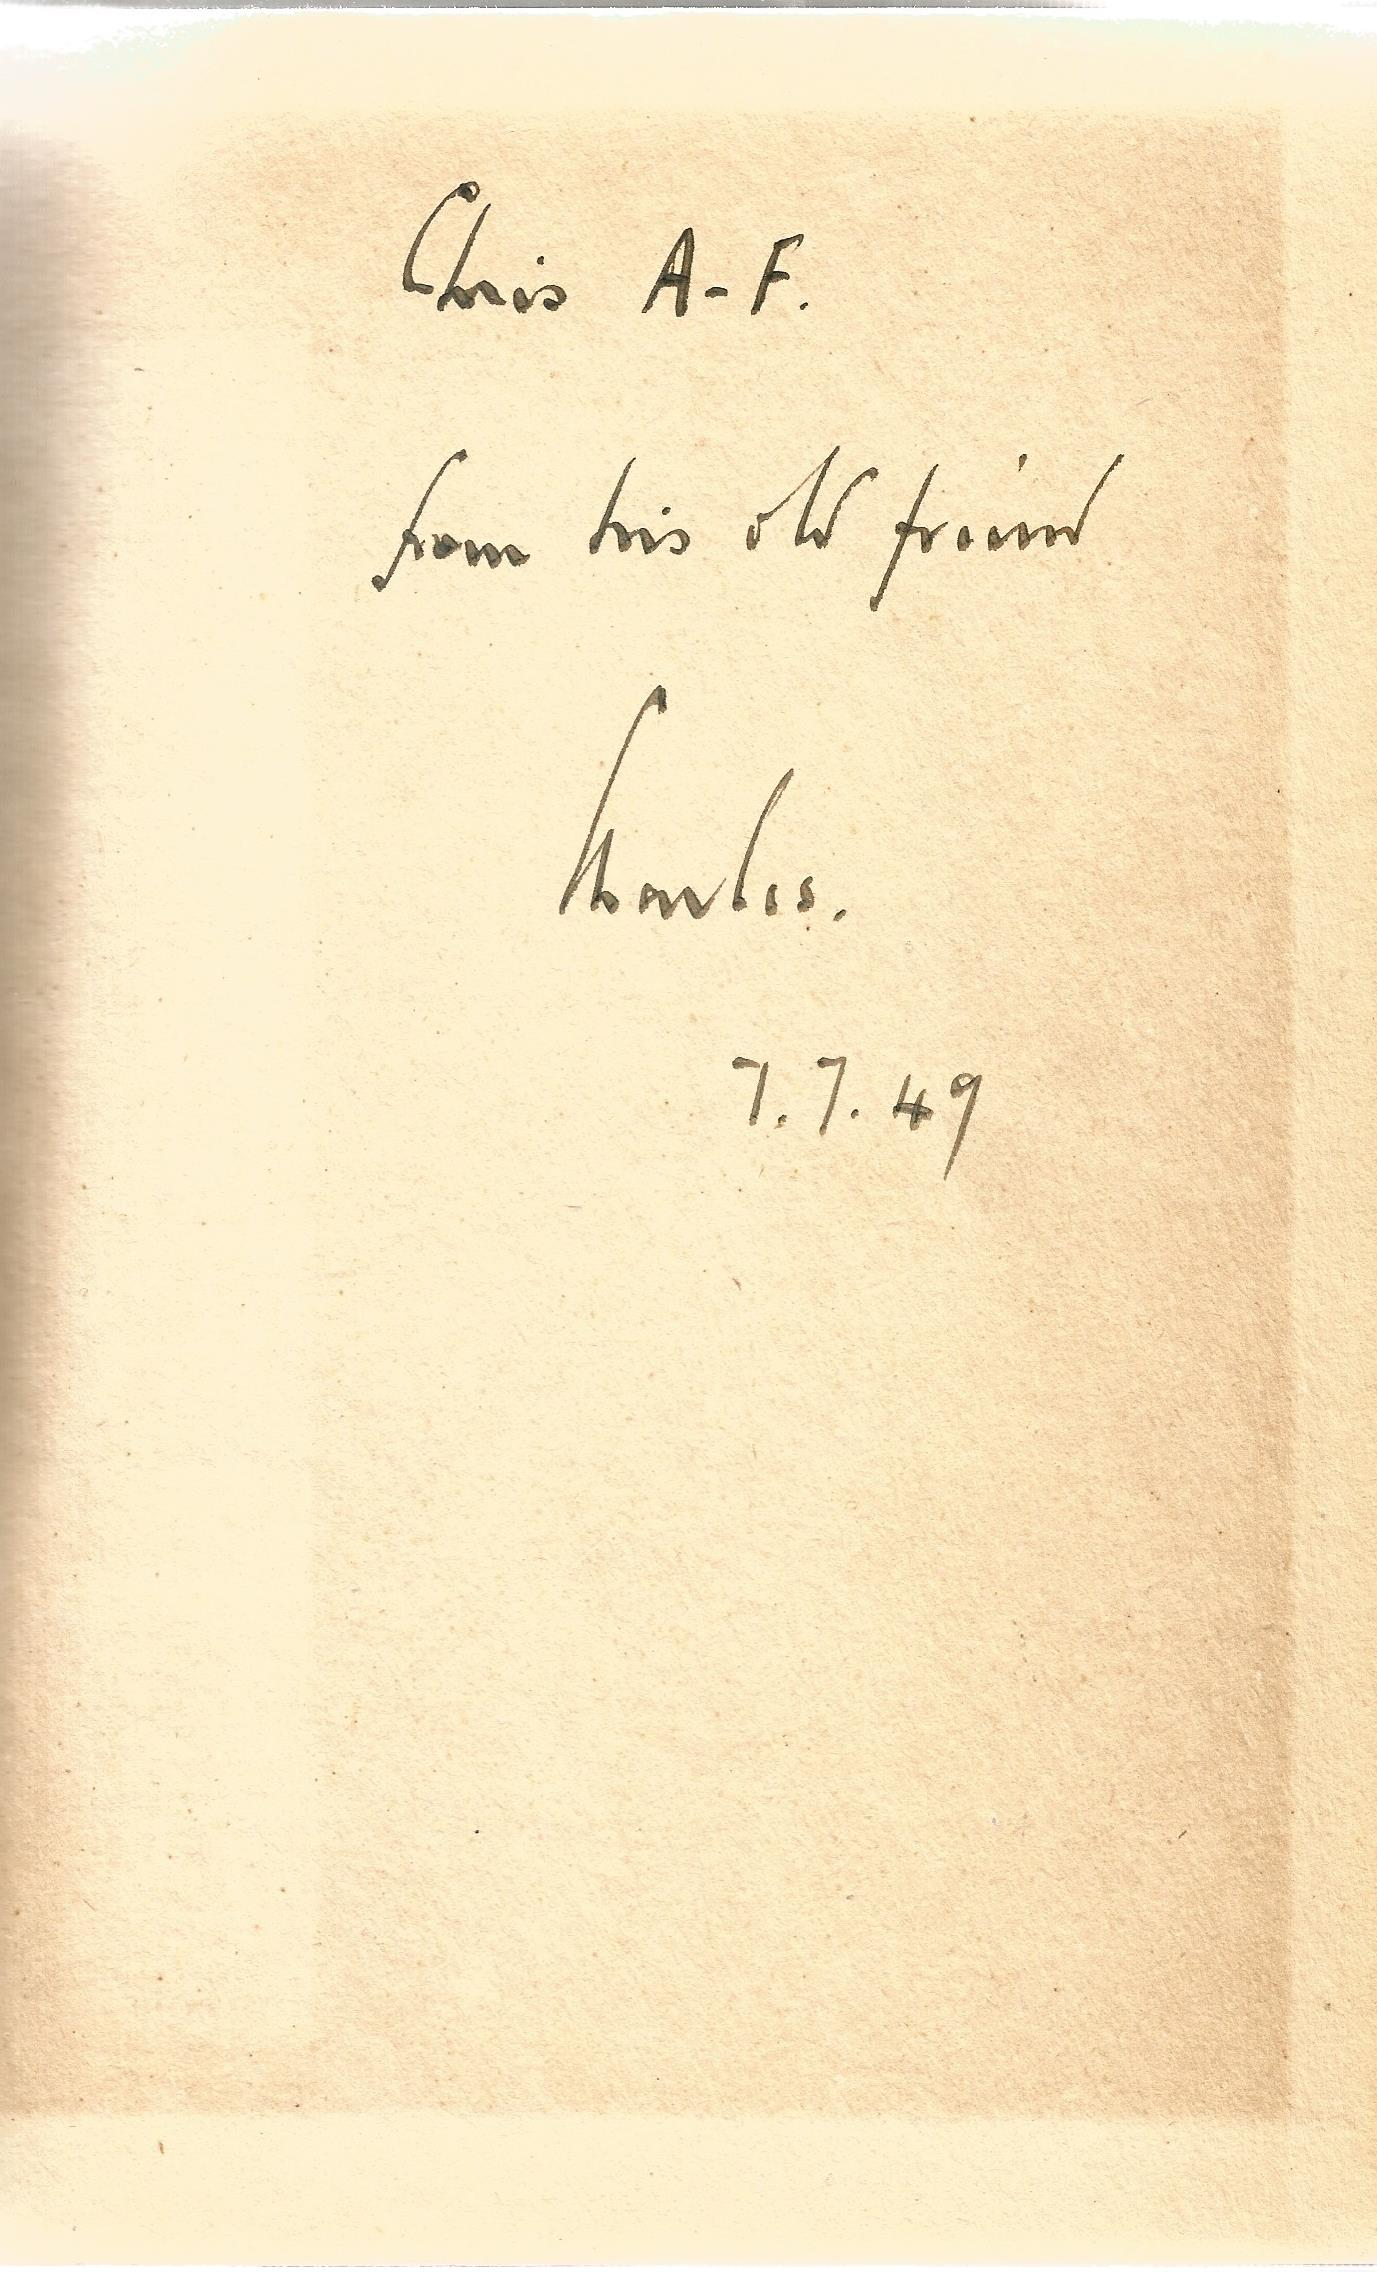 Signed Hardback Book The River Line by Charles Morgan First Edition 1949 published by Macmillan & Co - Image 3 of 3